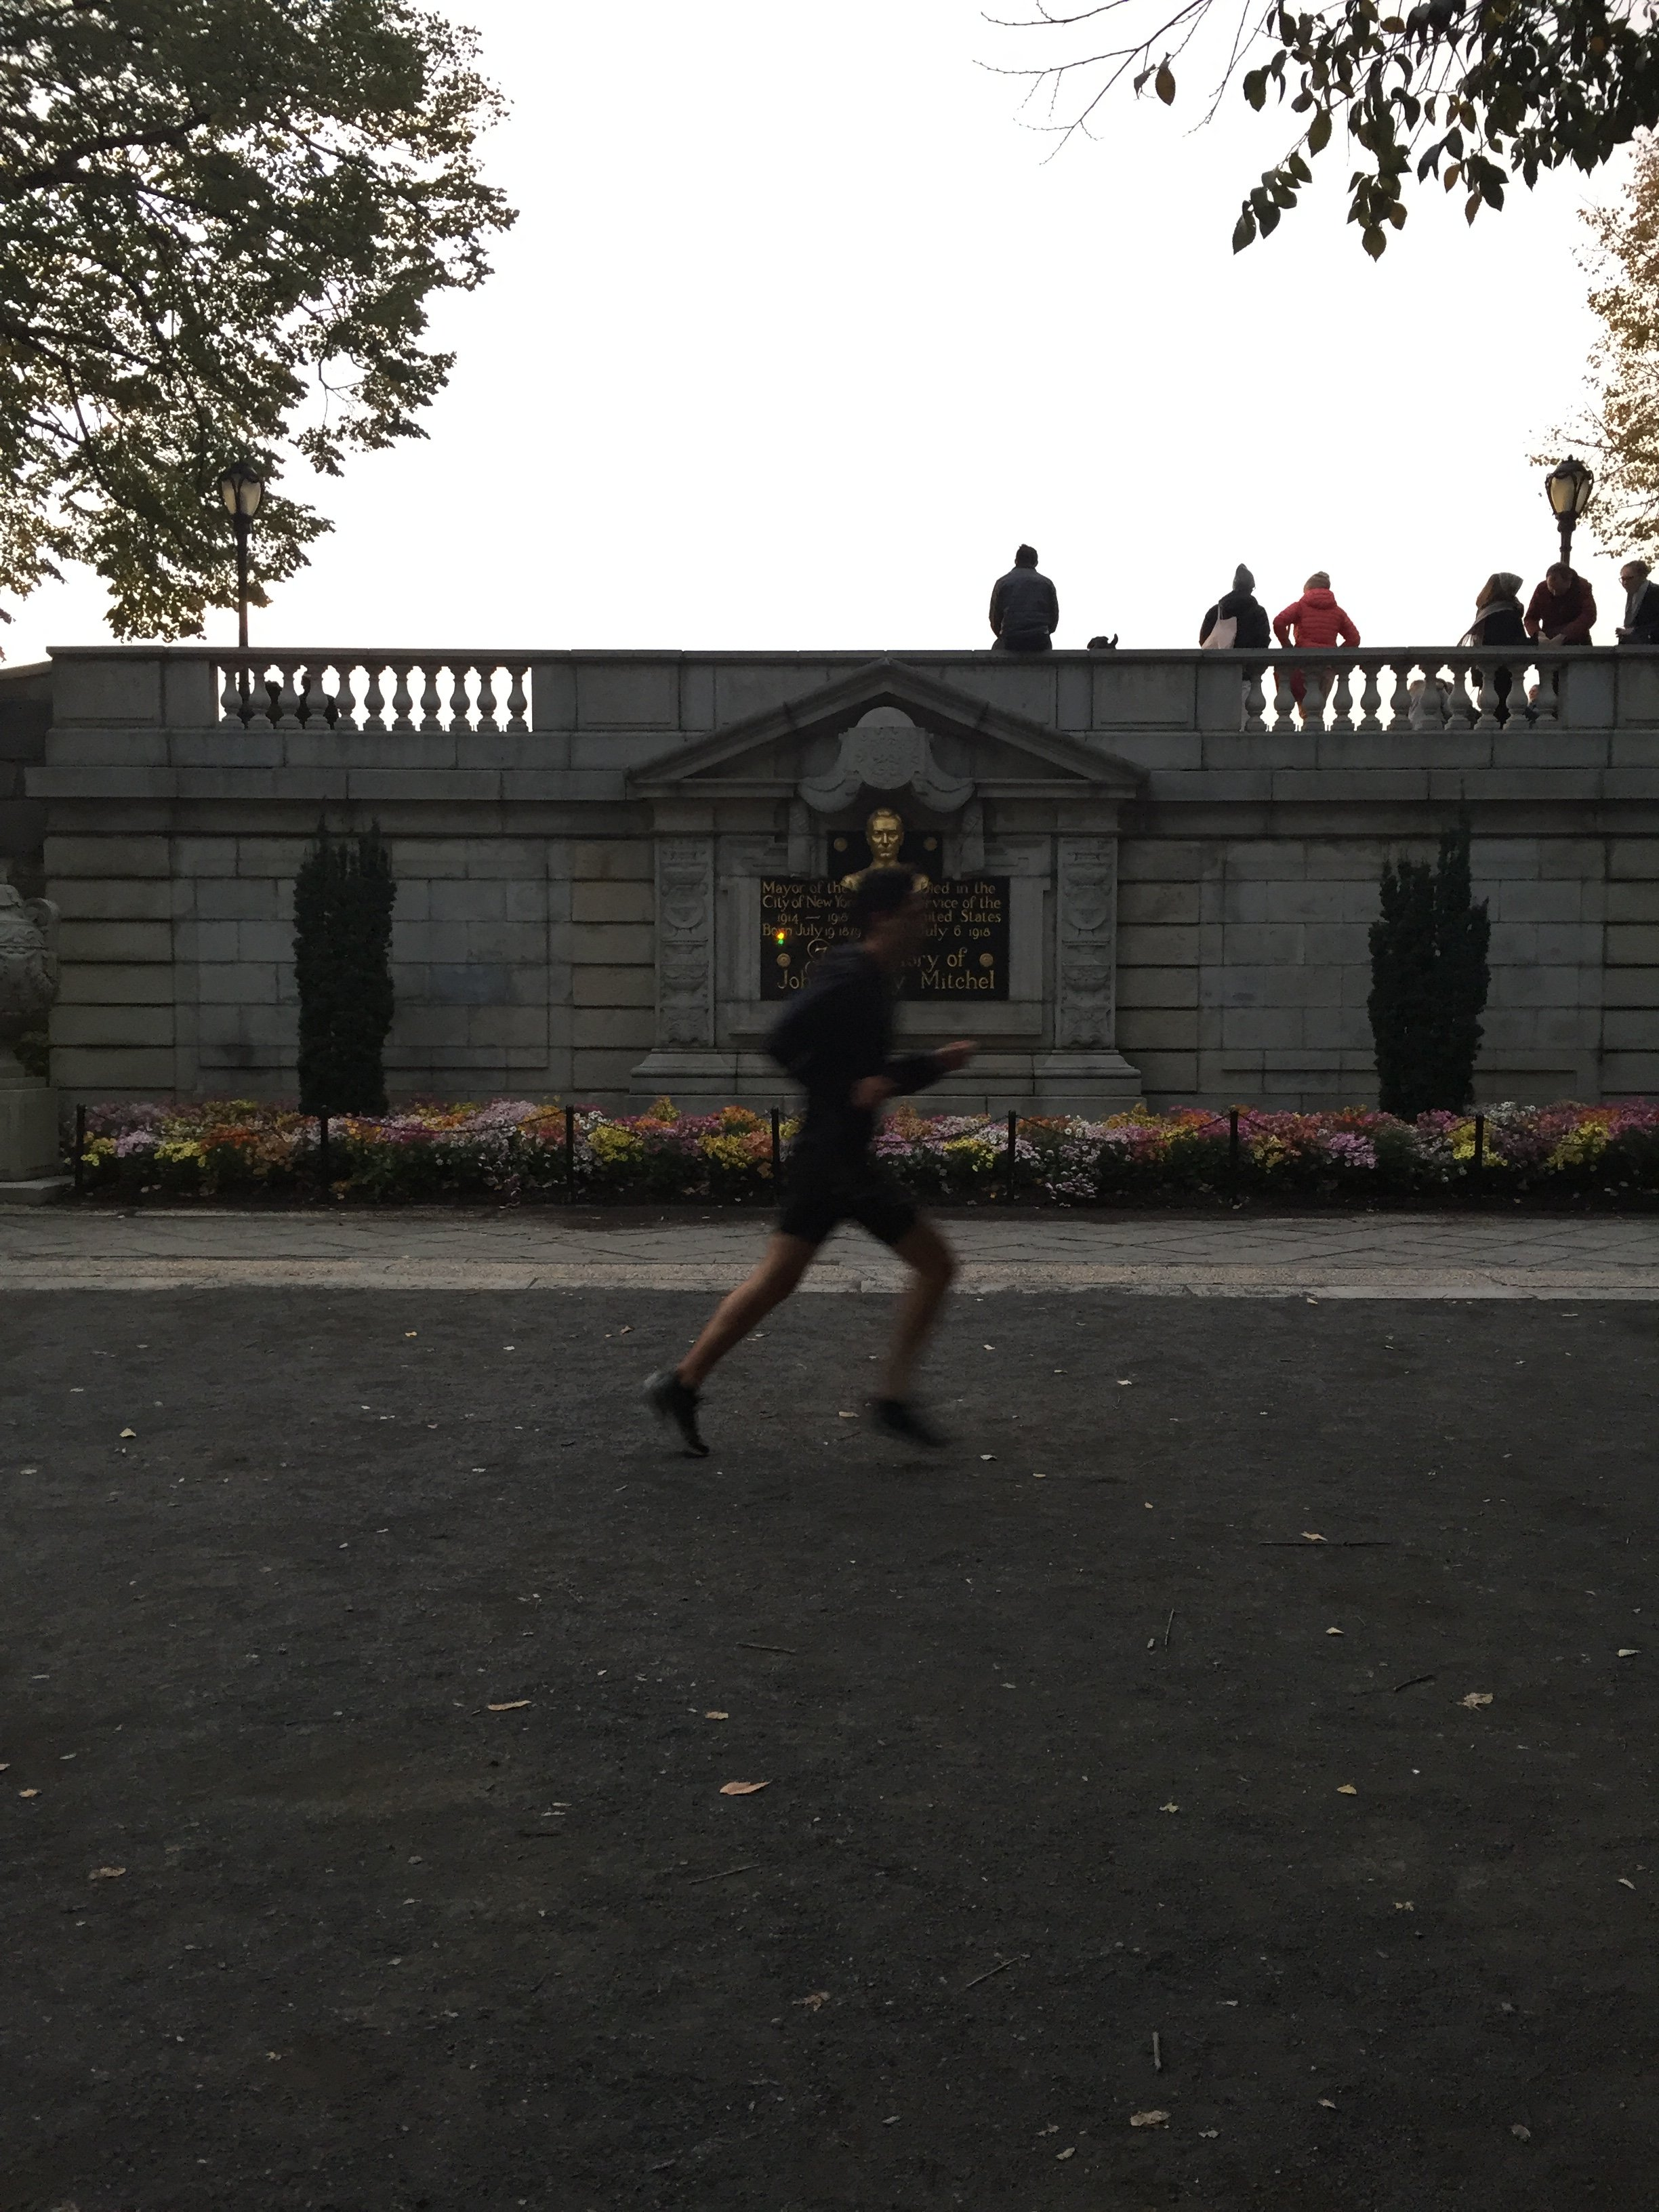 The monument compared to the scale of a human runner in the park.